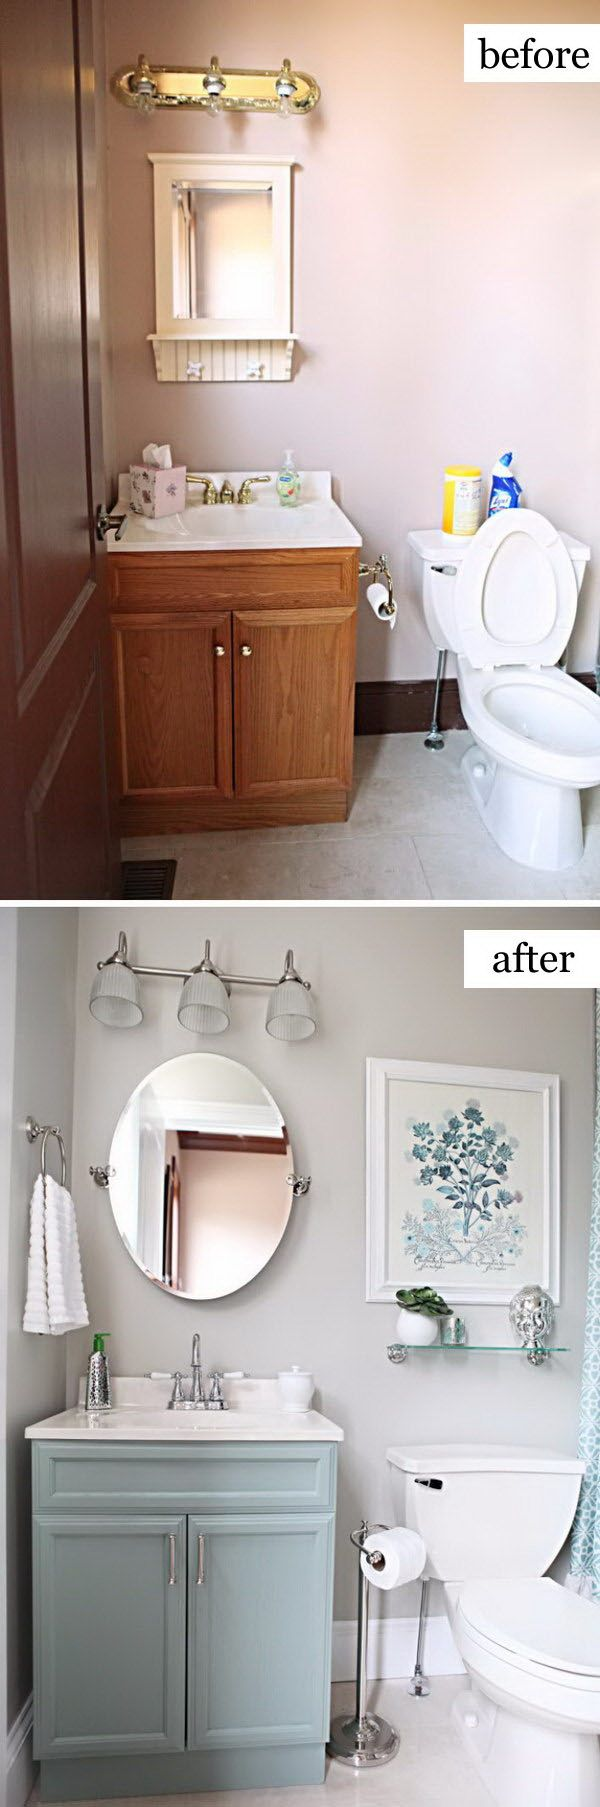 Bathroom Remodeling Ideas Pinterest best 25+ bathroom remodeling ideas on pinterest | small bathroom